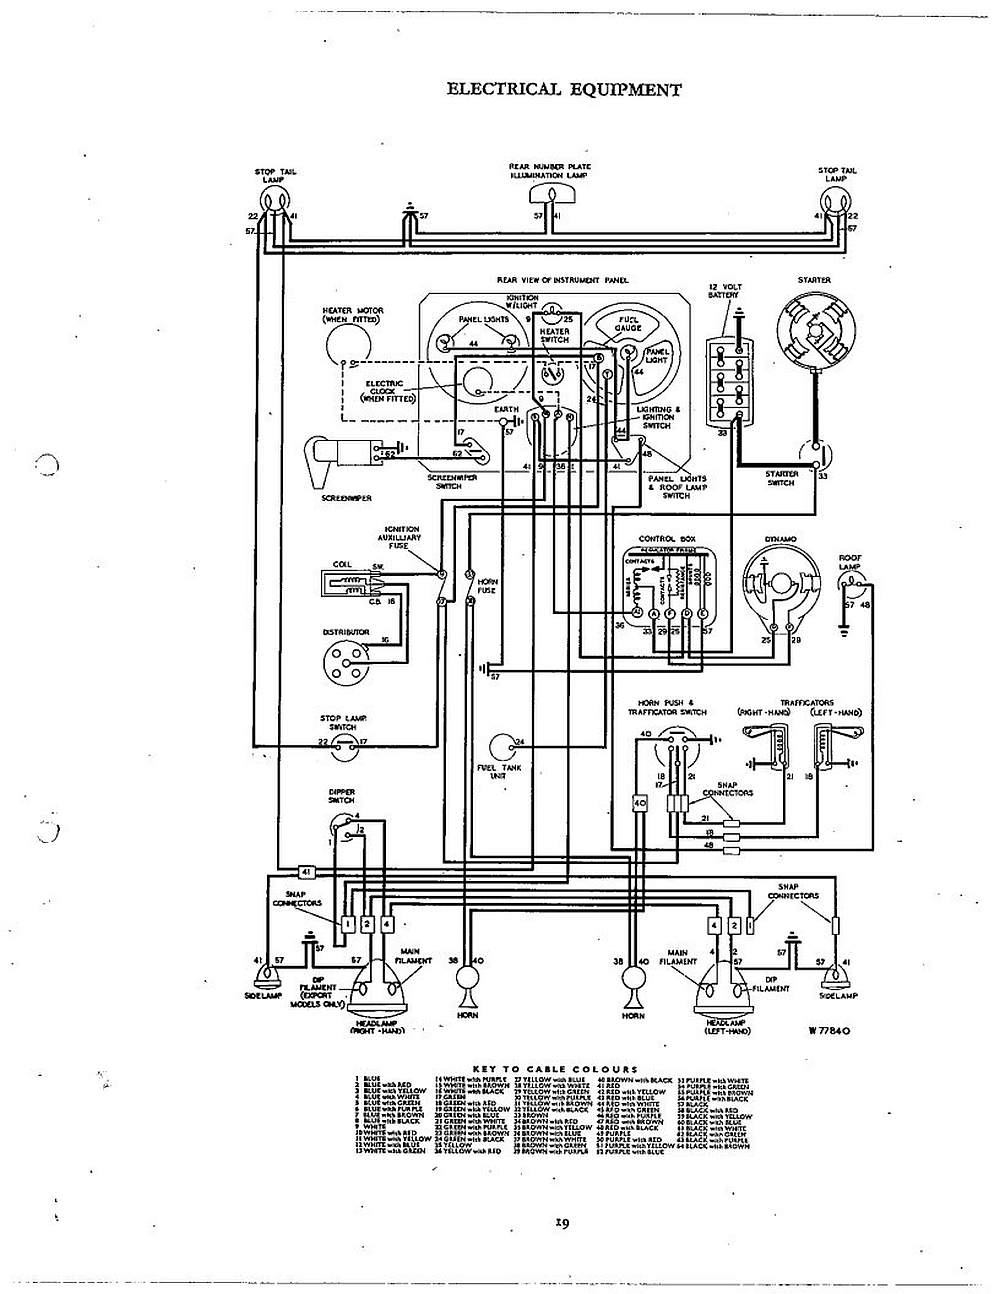 Triumph Gt6 Wiring Diagram - Wiring Diagram Schematic Name on spitfire interior diagram, triumph gt6 electrical diagram, spitfire ignition system,